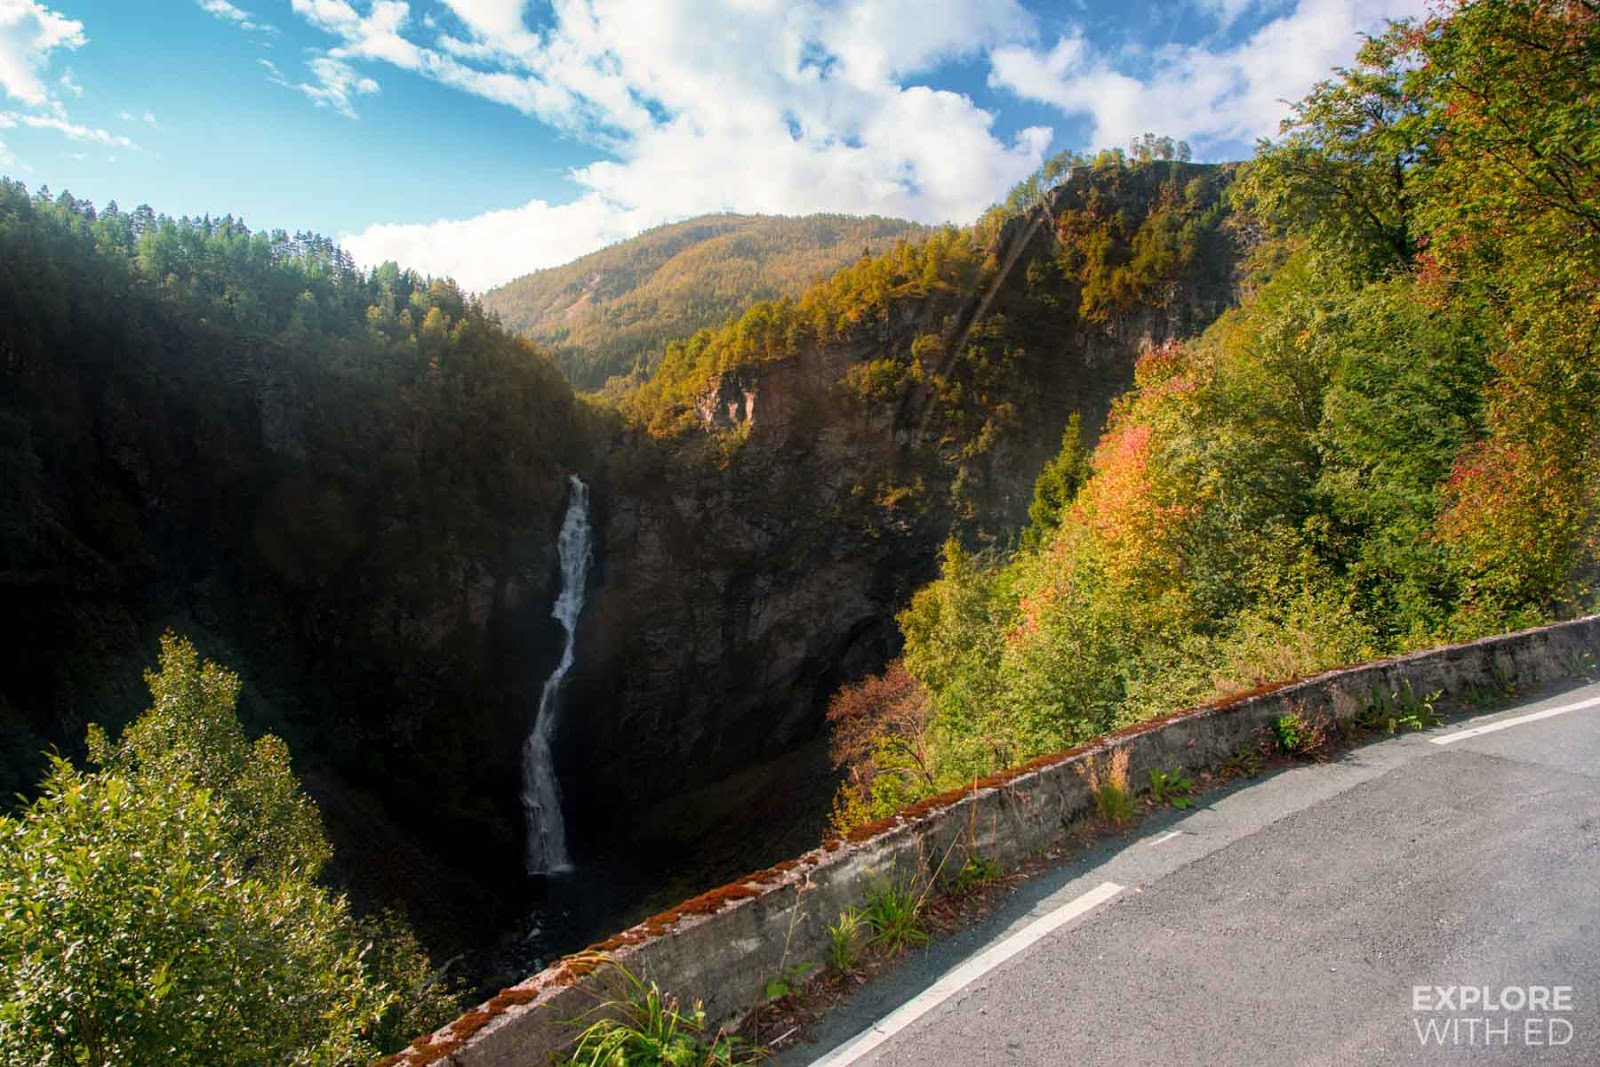 Waterfall viewed from Norway's steepest road